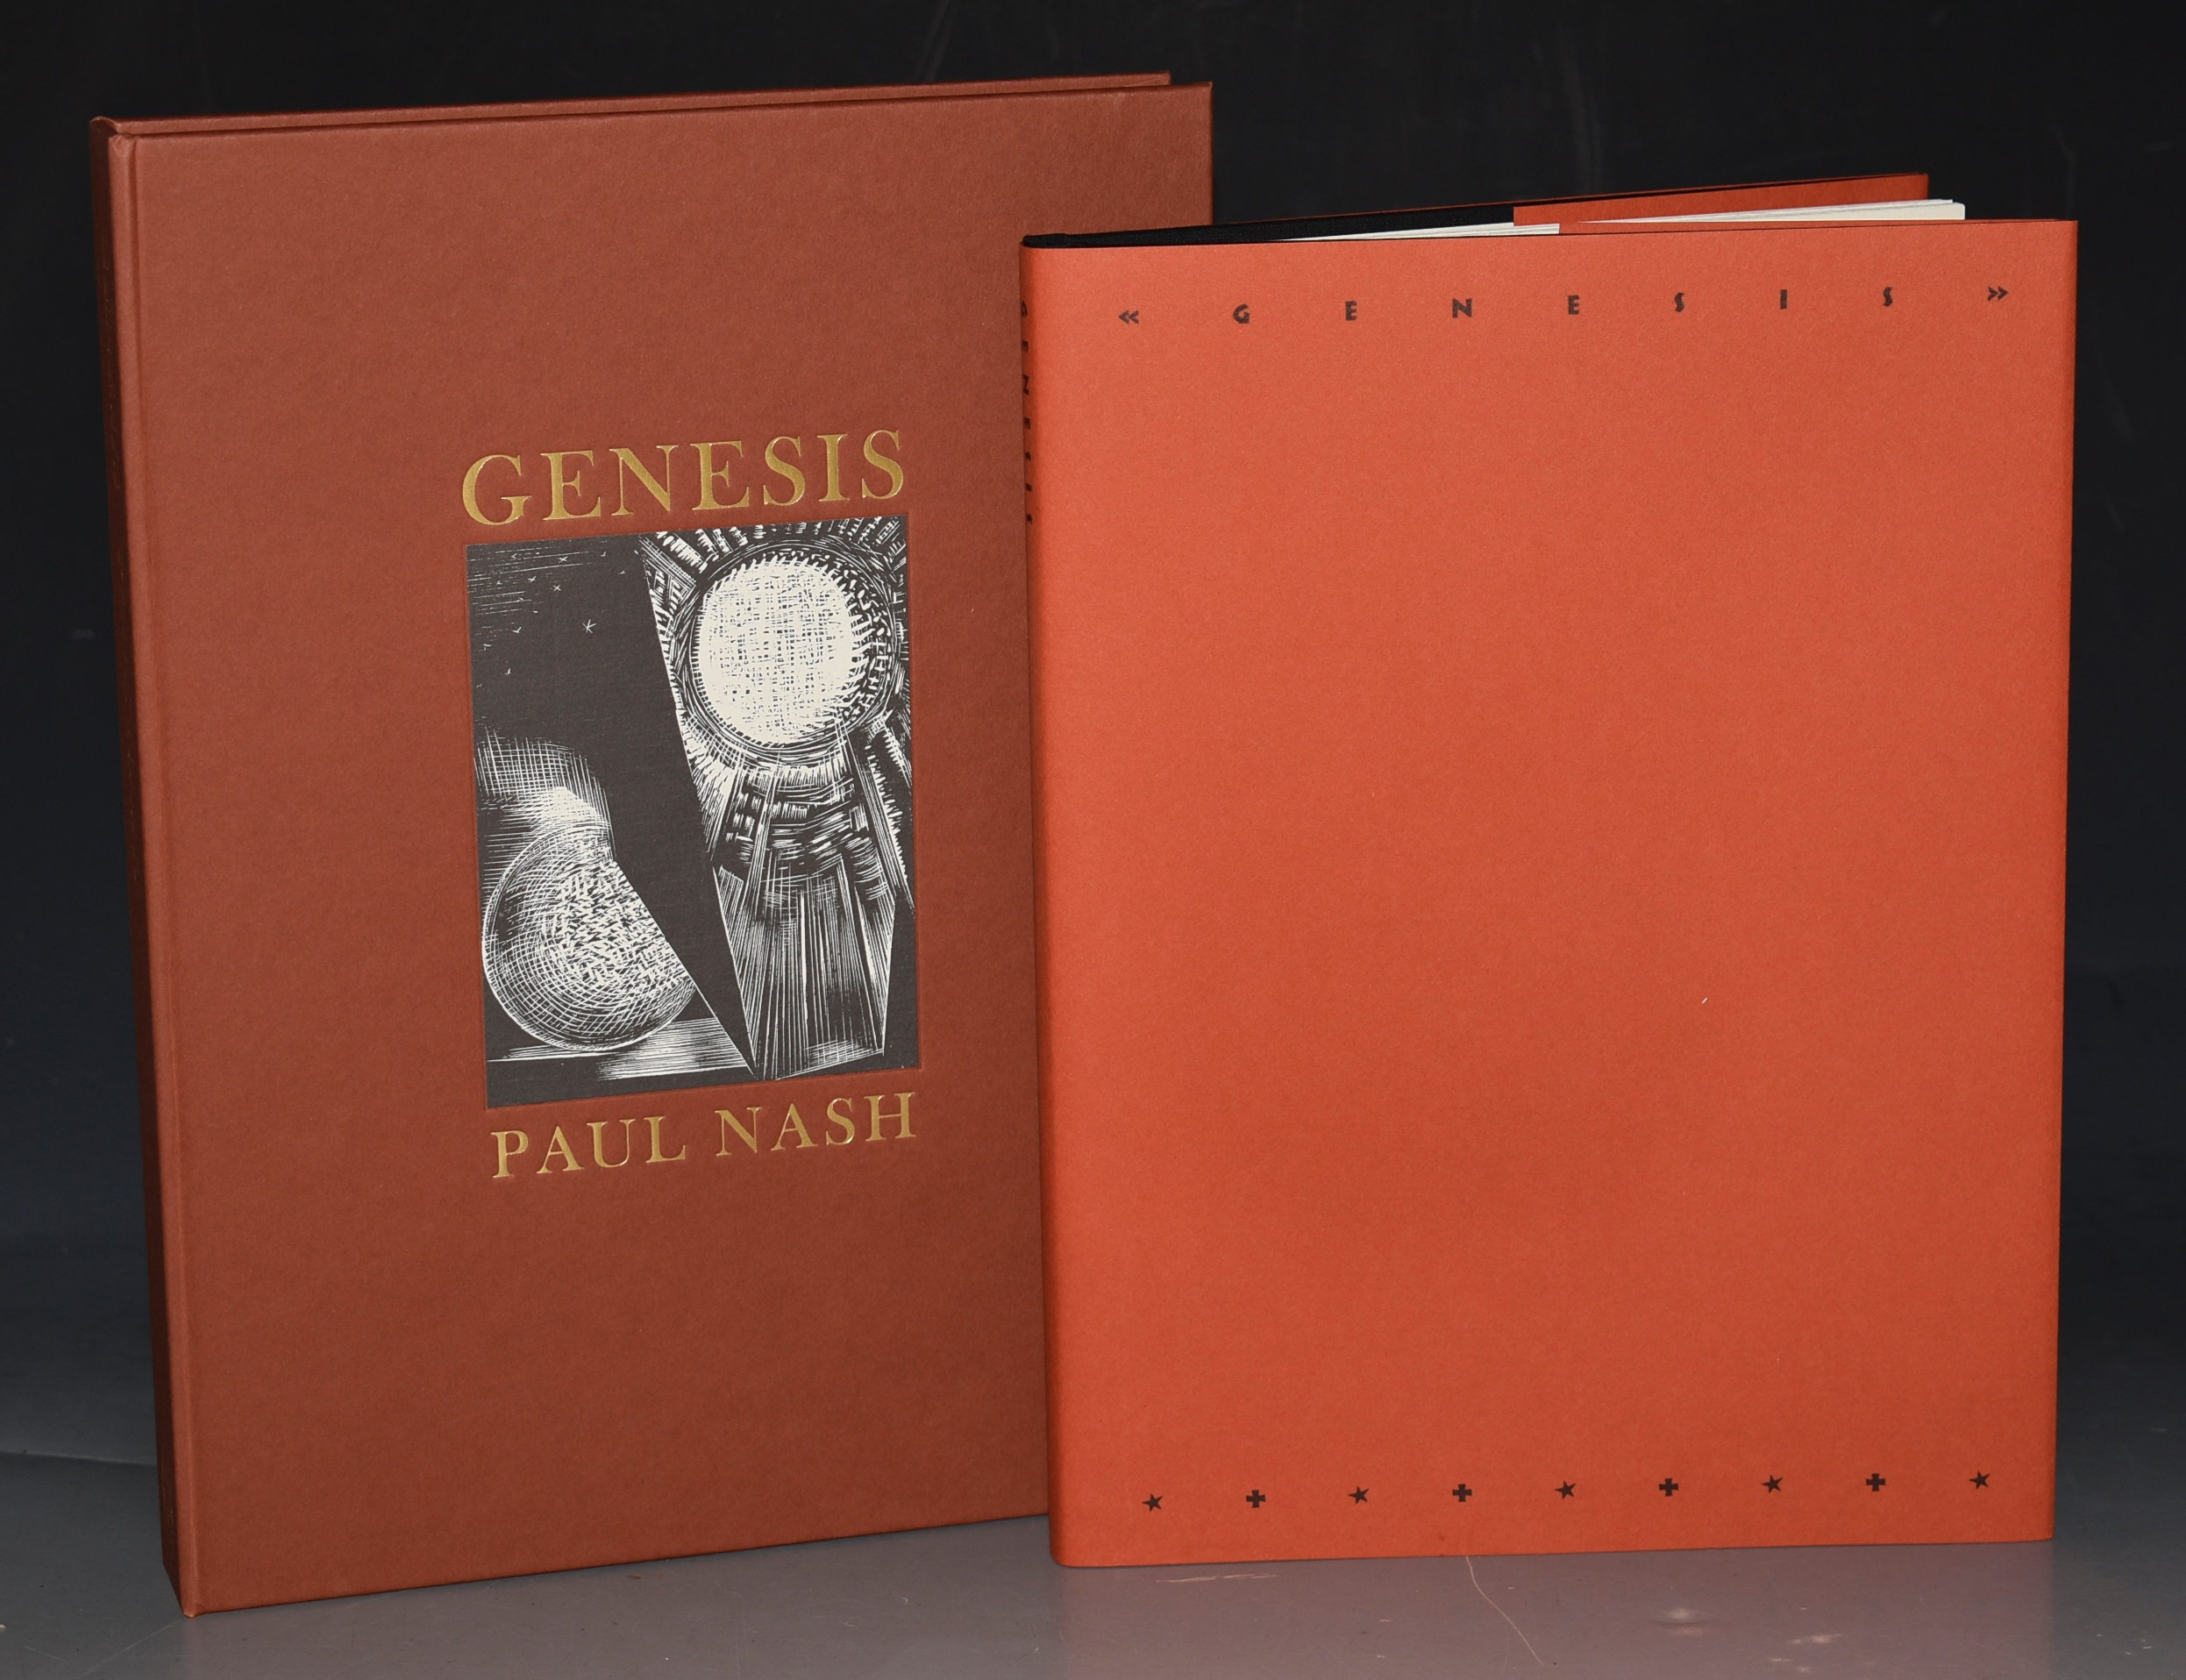 Image for Genesis Twelve Woodcuts by Paul Nash with the First Chapter of Genesis in the Authorised Version. Limited Numbered Cased Edition. Facsimile of the 1924 Nonesuch Press Edition. With an Essay by Sebastian Carter.